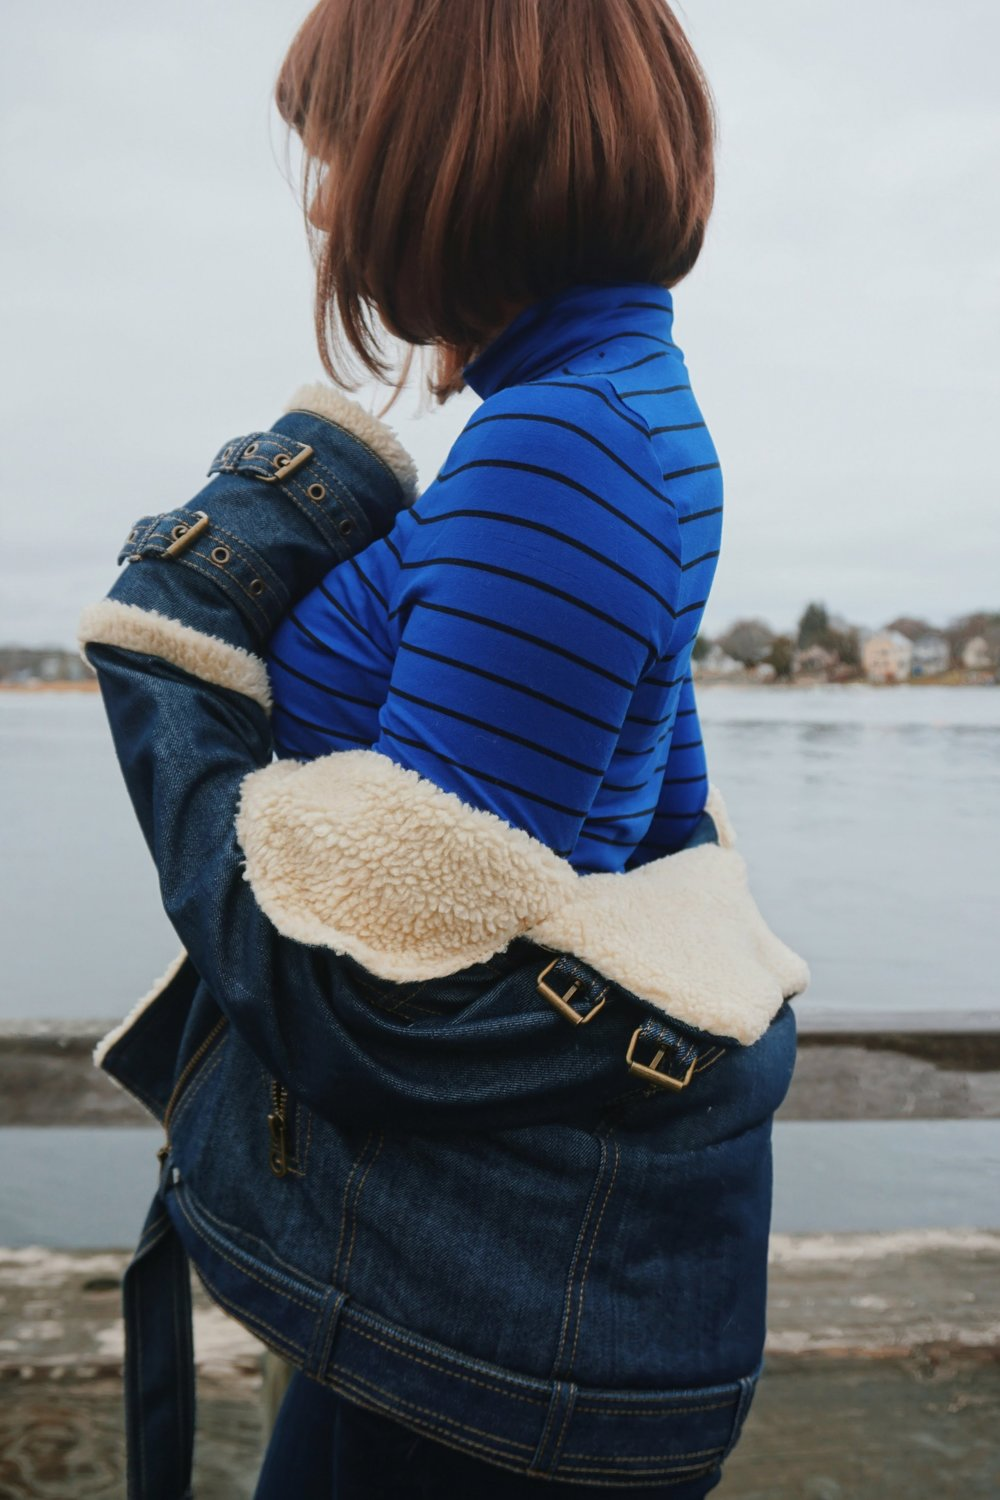 Details of an outfit: blue turtleneck with black stripes, winter denim jacket, jeans.